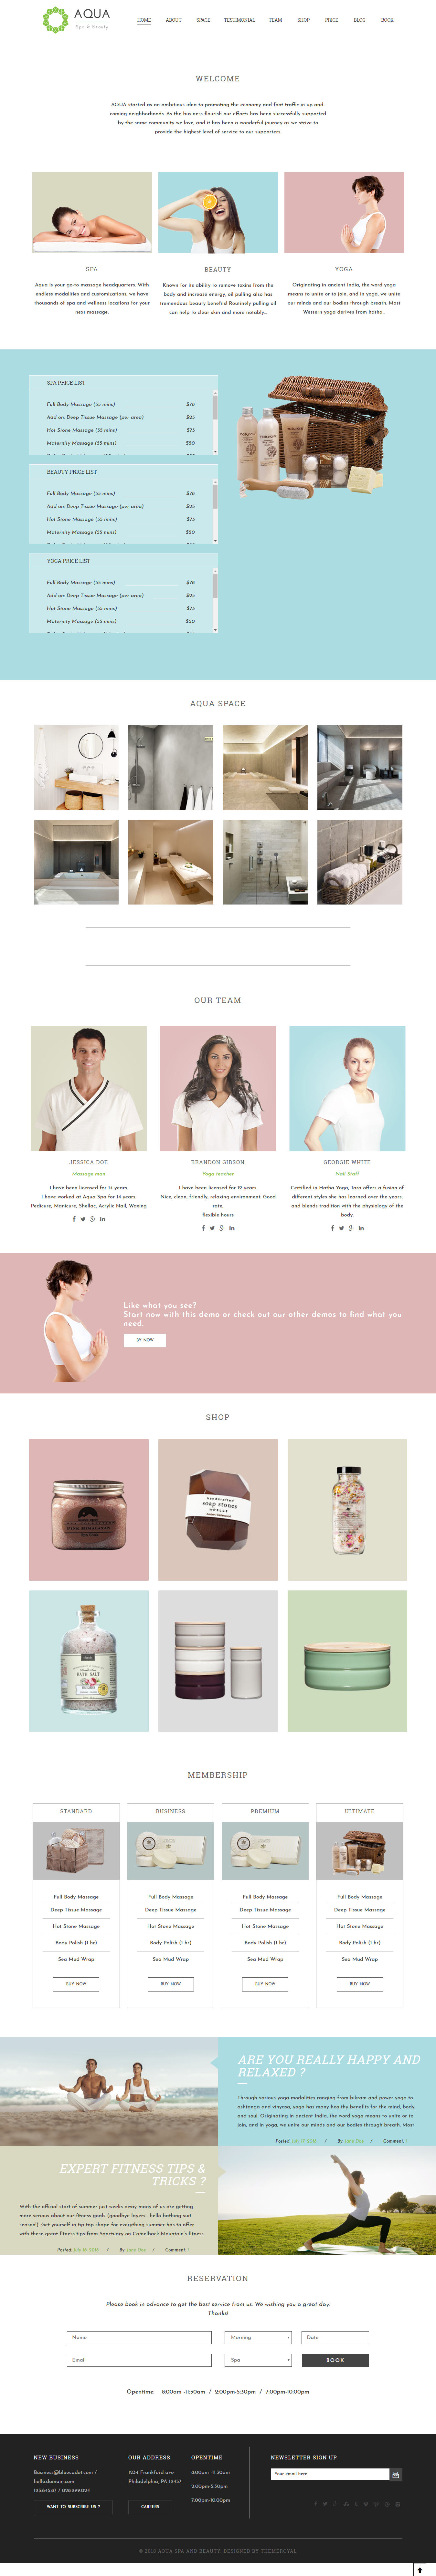 Aqua - Best Premium Spa and Beauty WordPress Theme